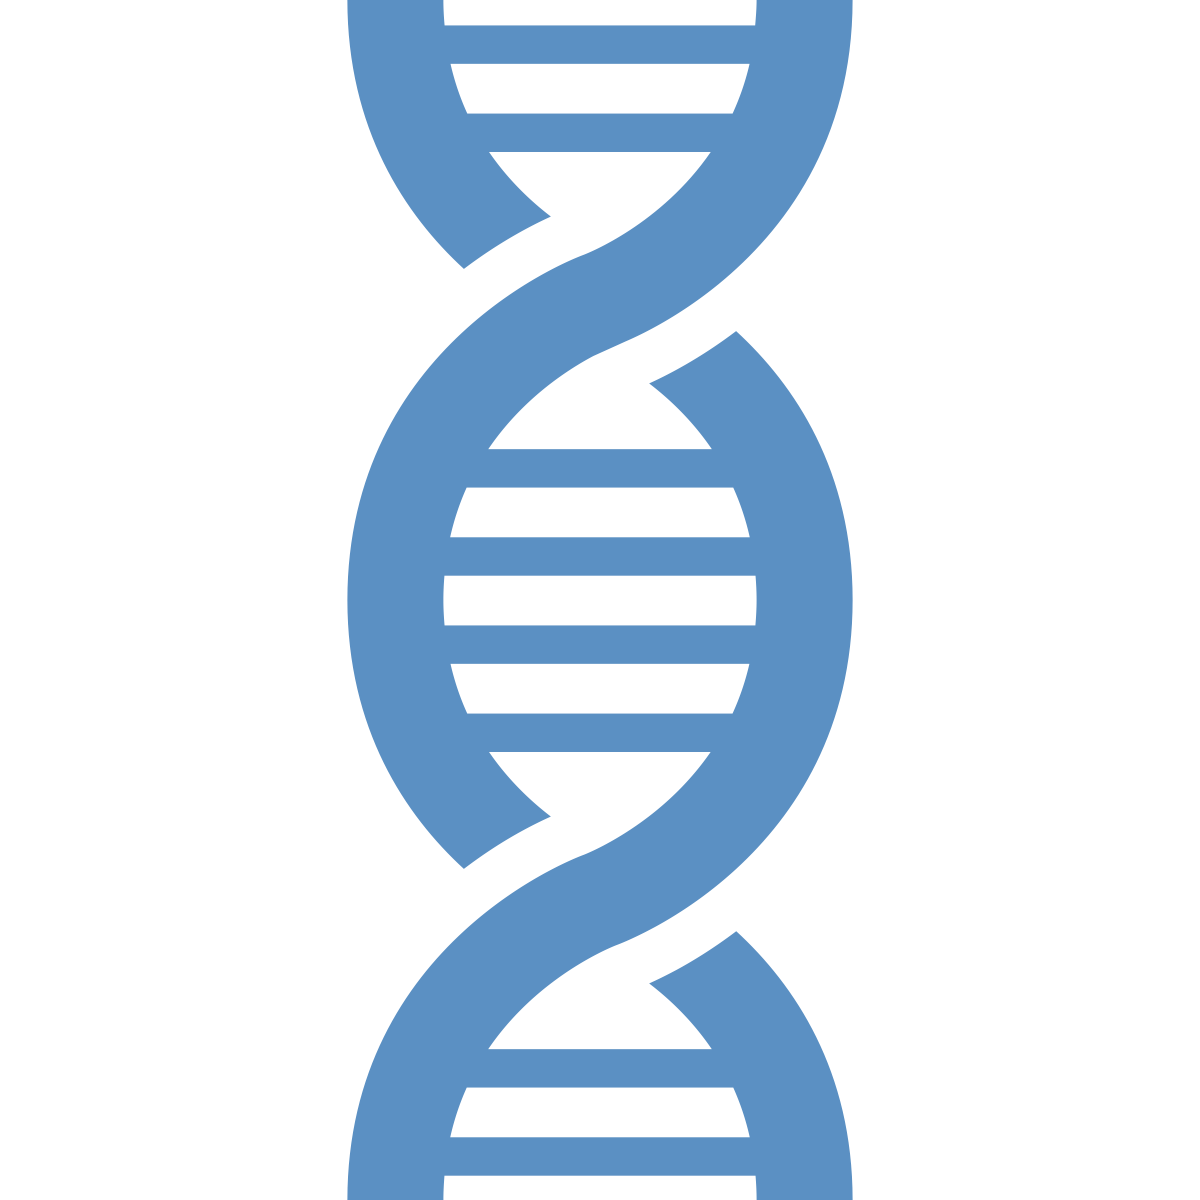 Icon: DNA sequence representing life sciences industry.